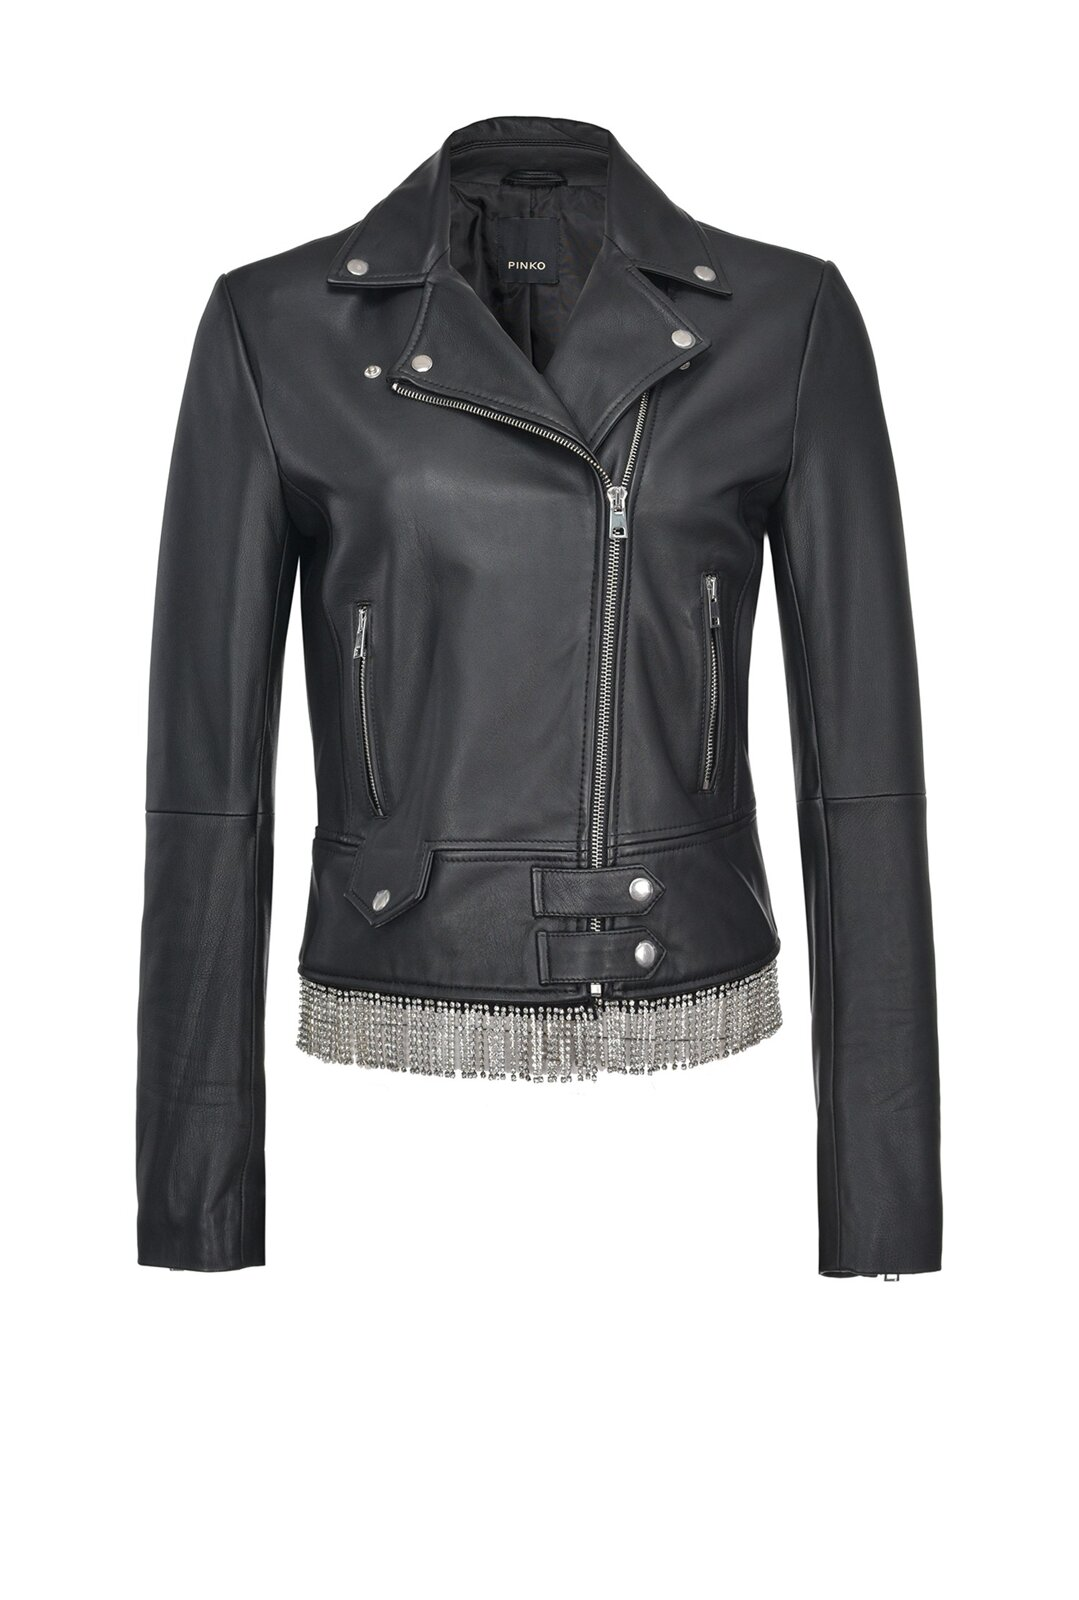 Reimagine Leather Biker Jacket With Strass - Pinko